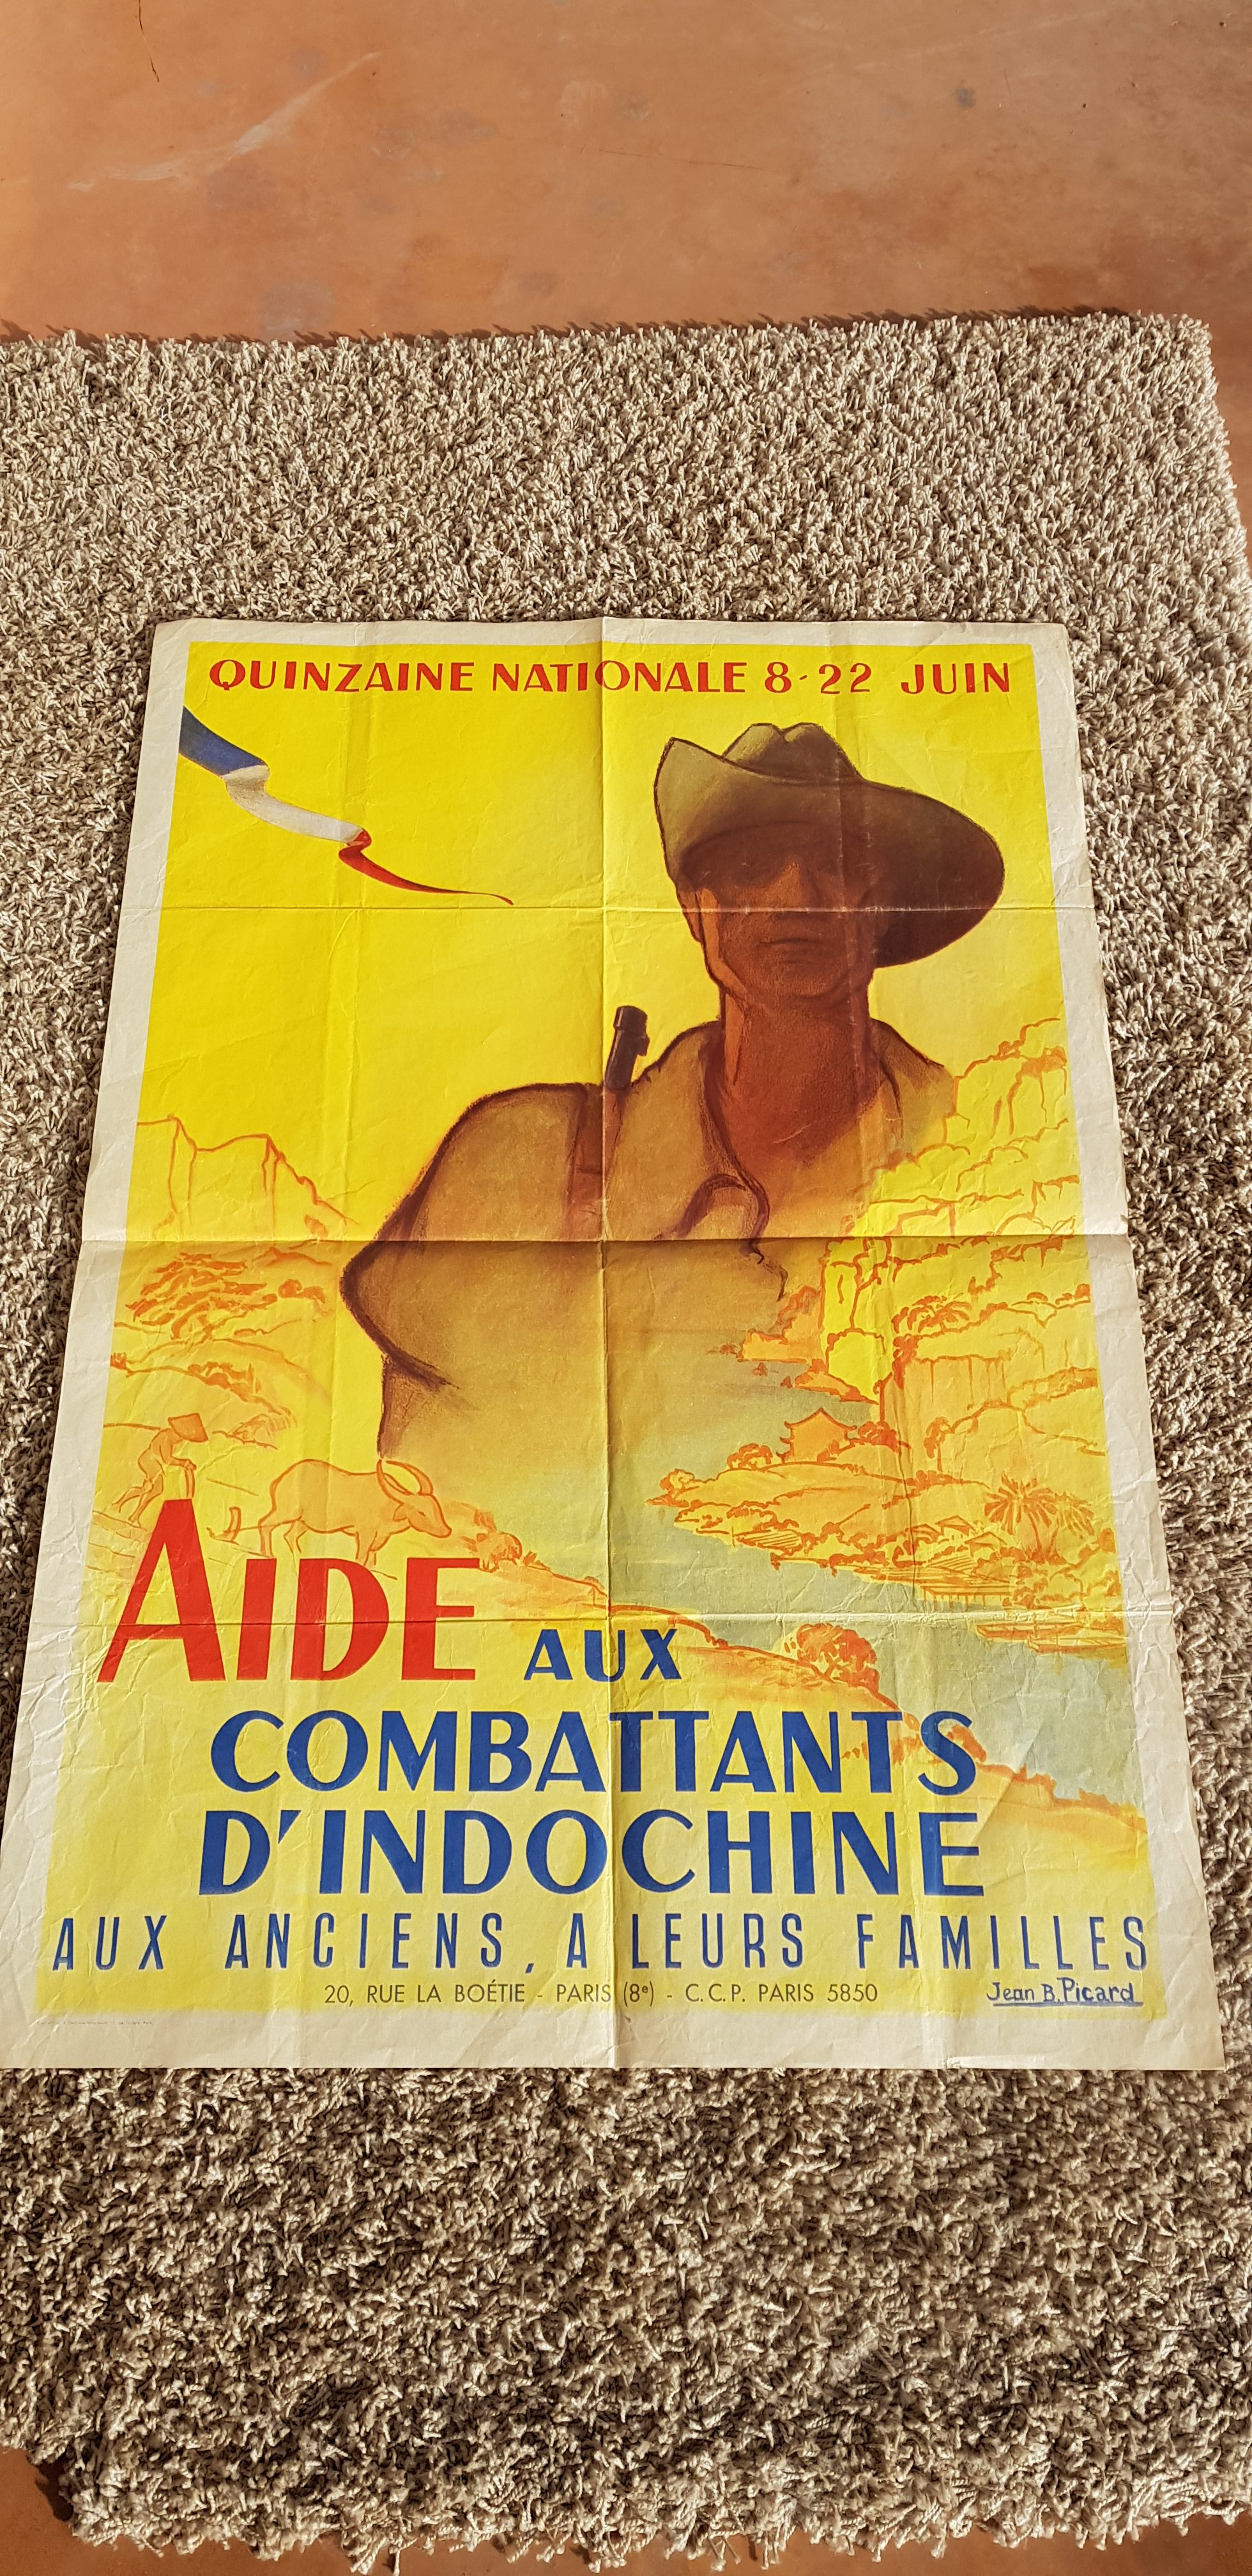 Meubles Indochinois Anciens Affiche Ancienne Jean B Picard